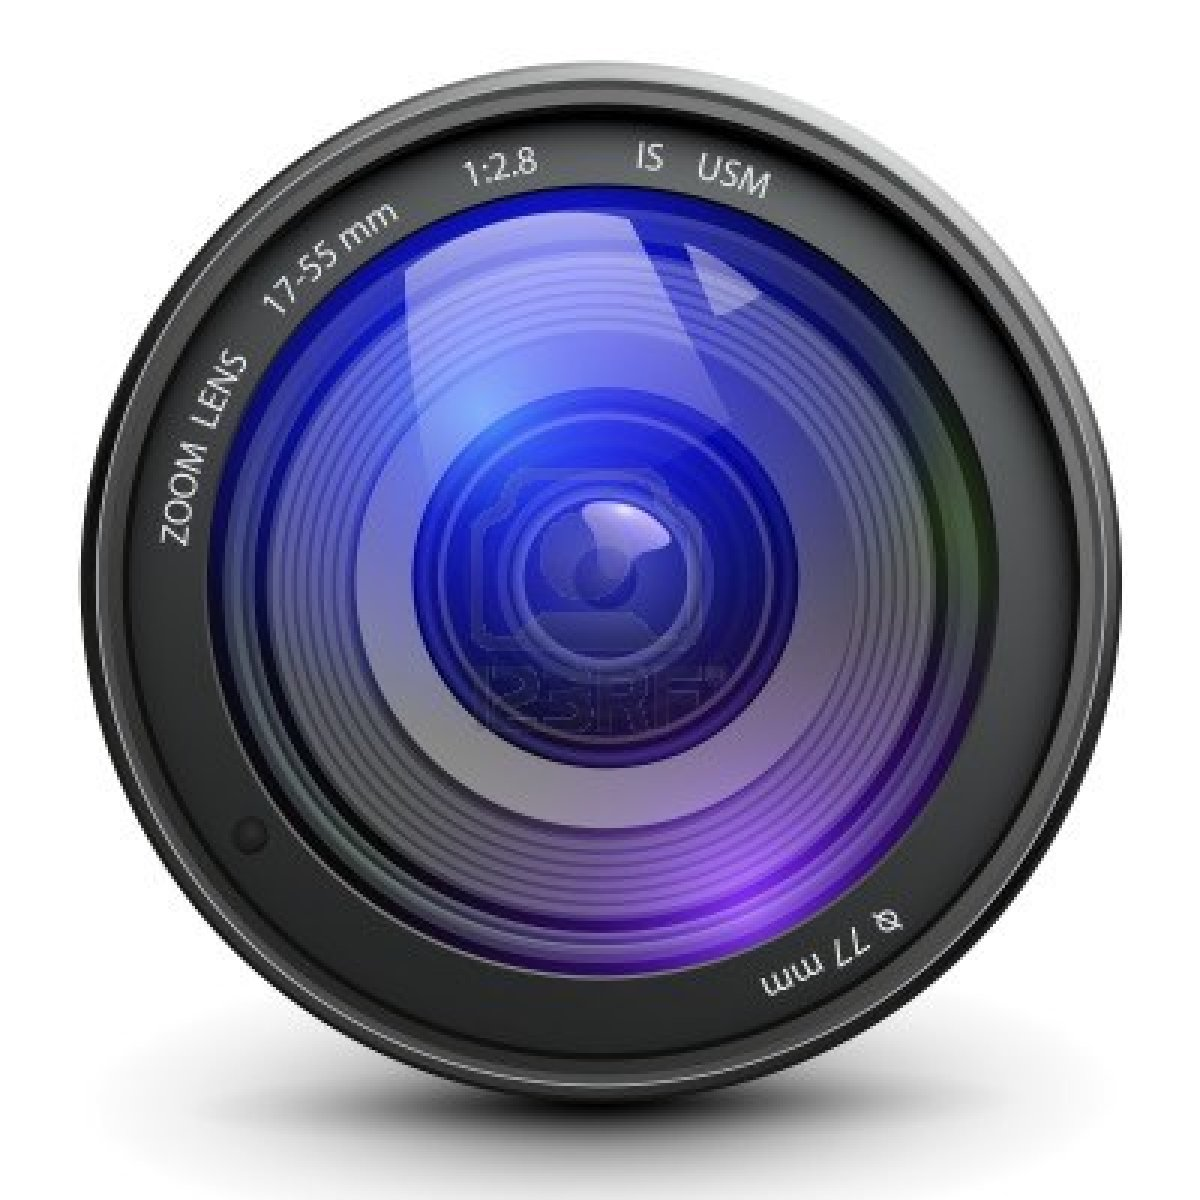 Dslr clipart camera lense Cliparts Dslr Clipart Dslr Lens